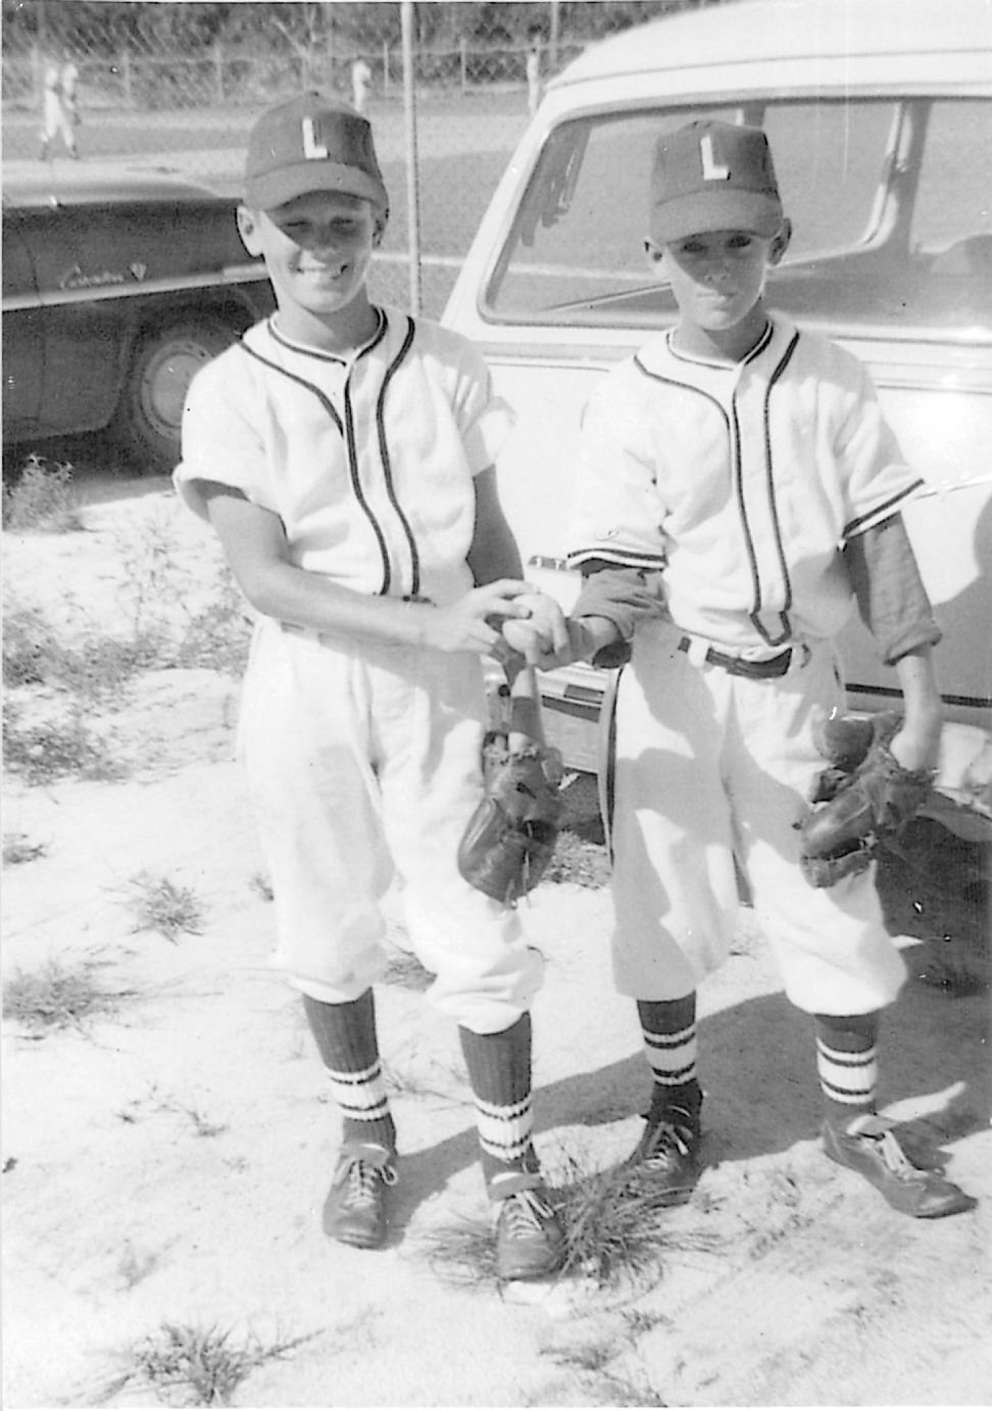 Bill Nelson, left, with his childhood friend, Kim Hammond, who would go on to be a star quarterback at Florida State, played professionally and became a judge in Flagler County. He died in July 2017 at age 72. (Courtesy of Bill Nelson)